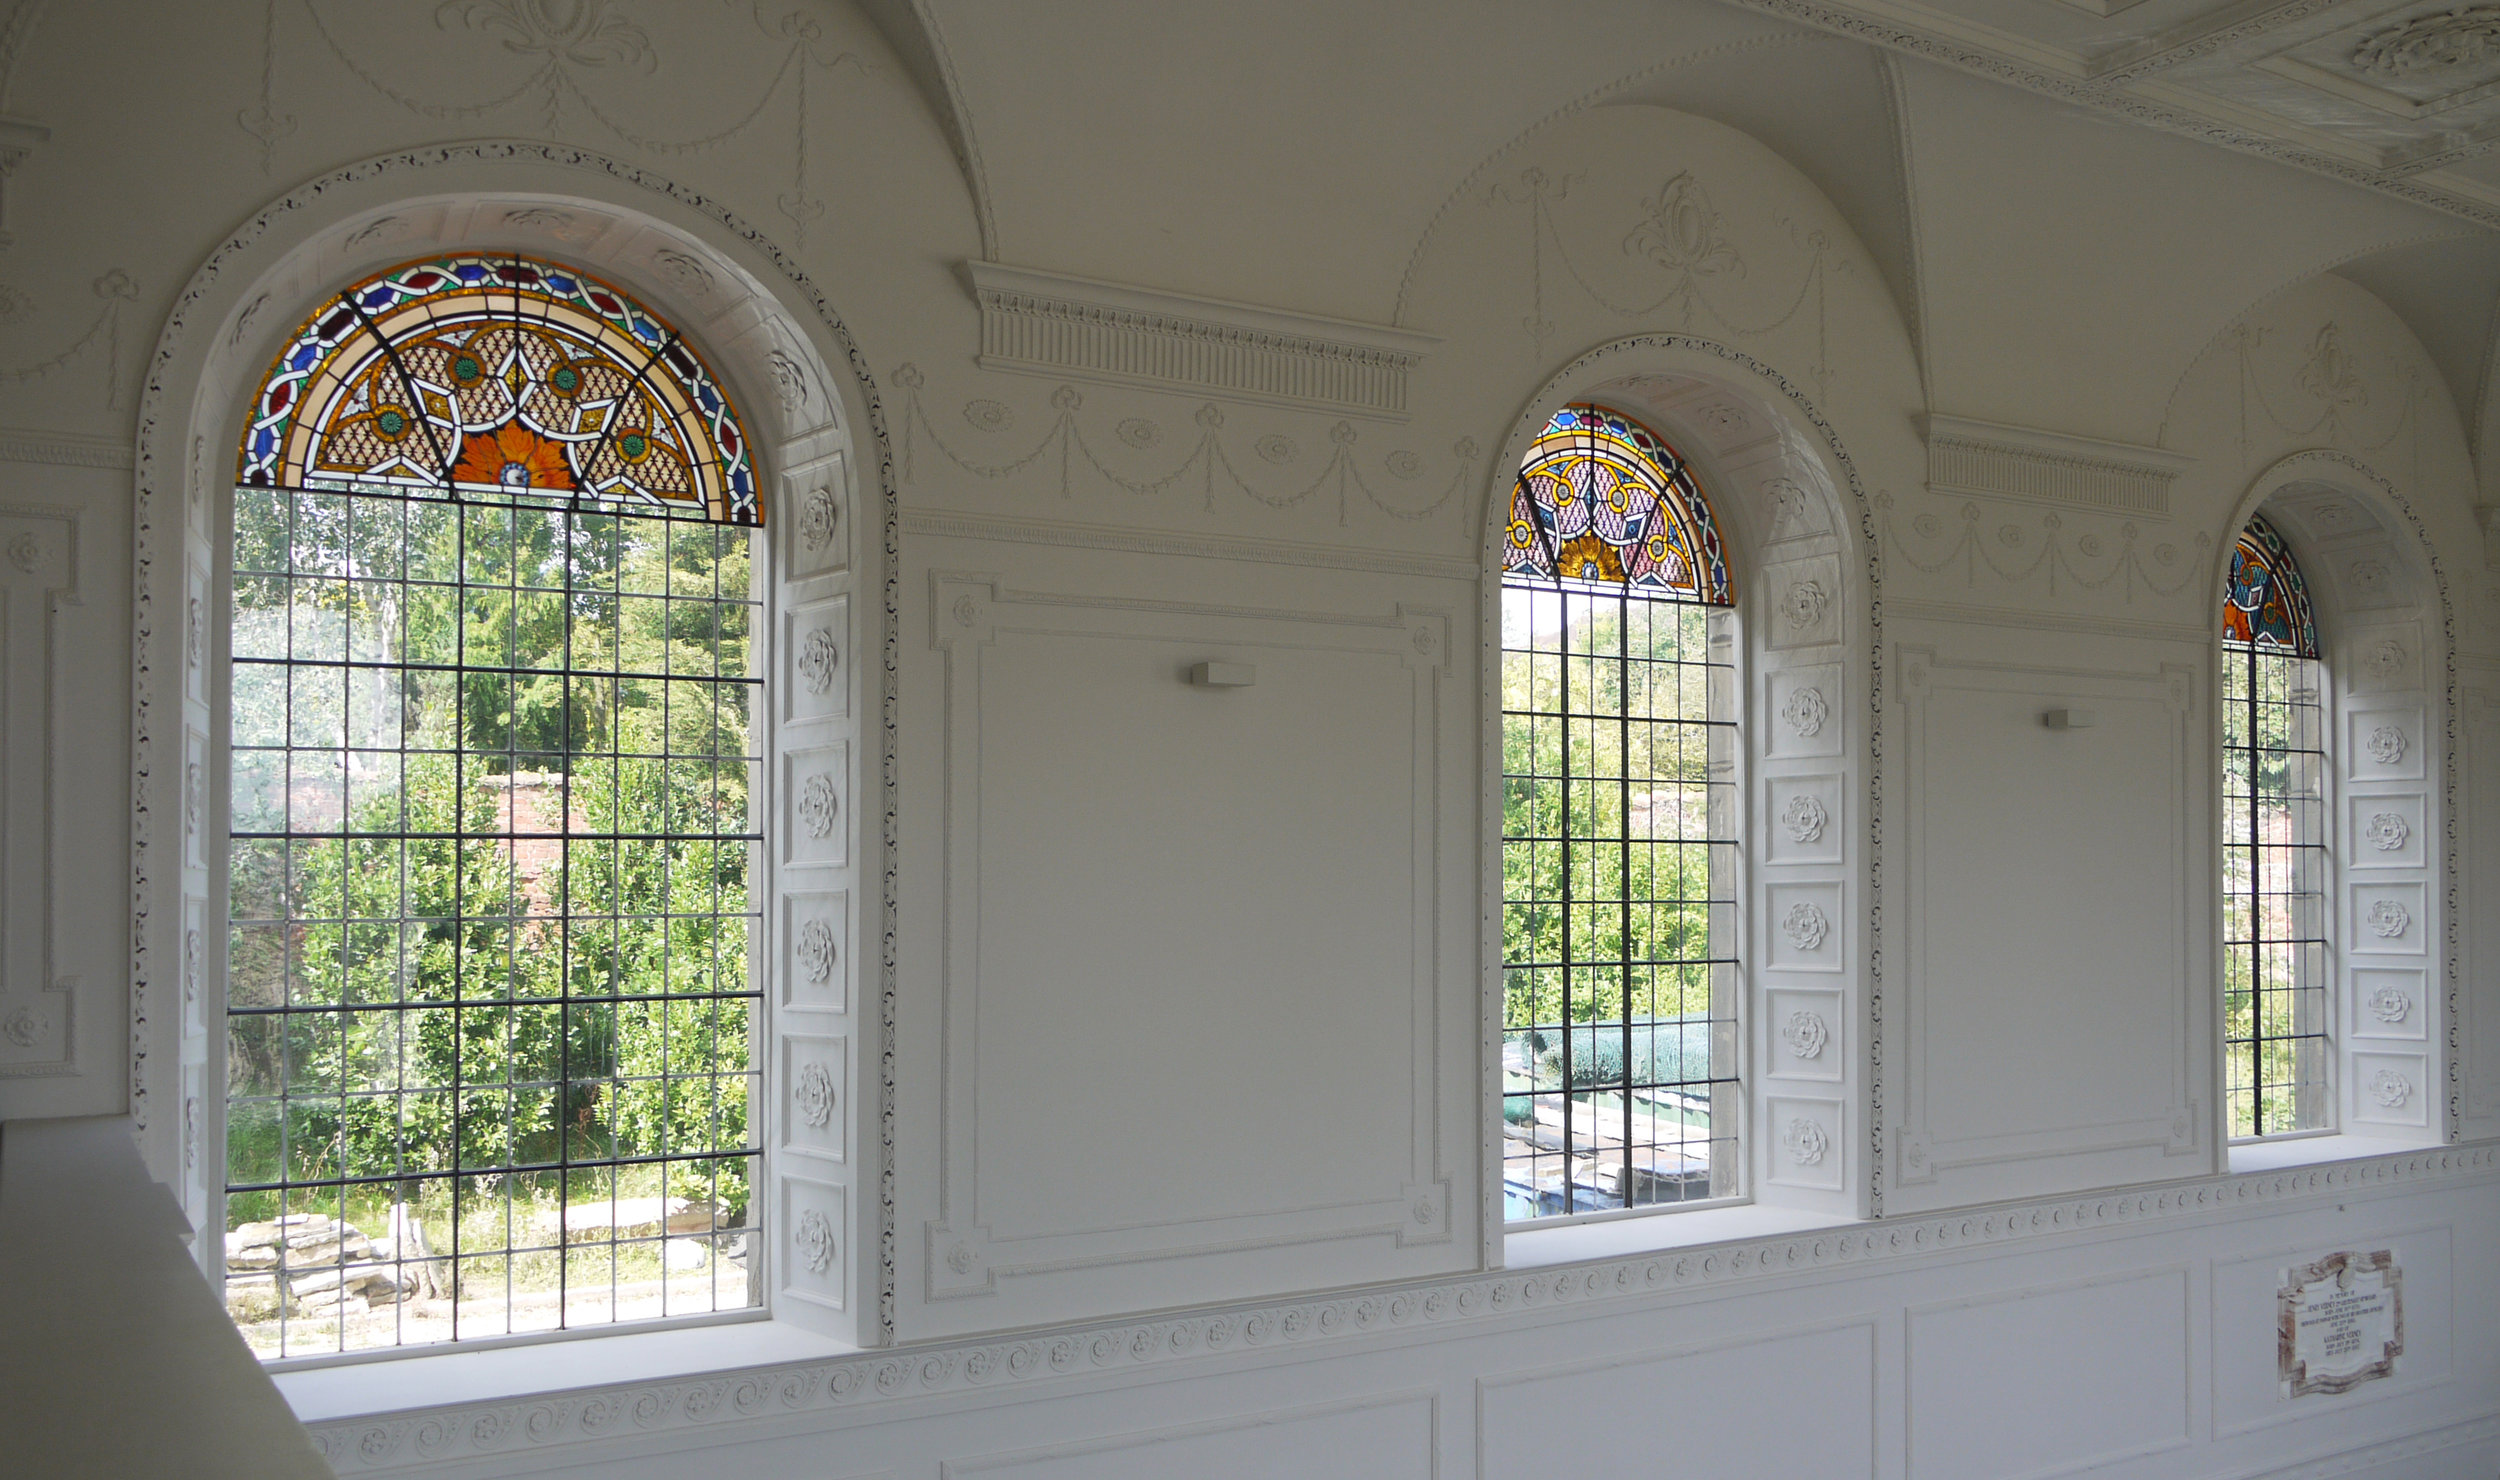 Stained glass in the north windows of the Chapel